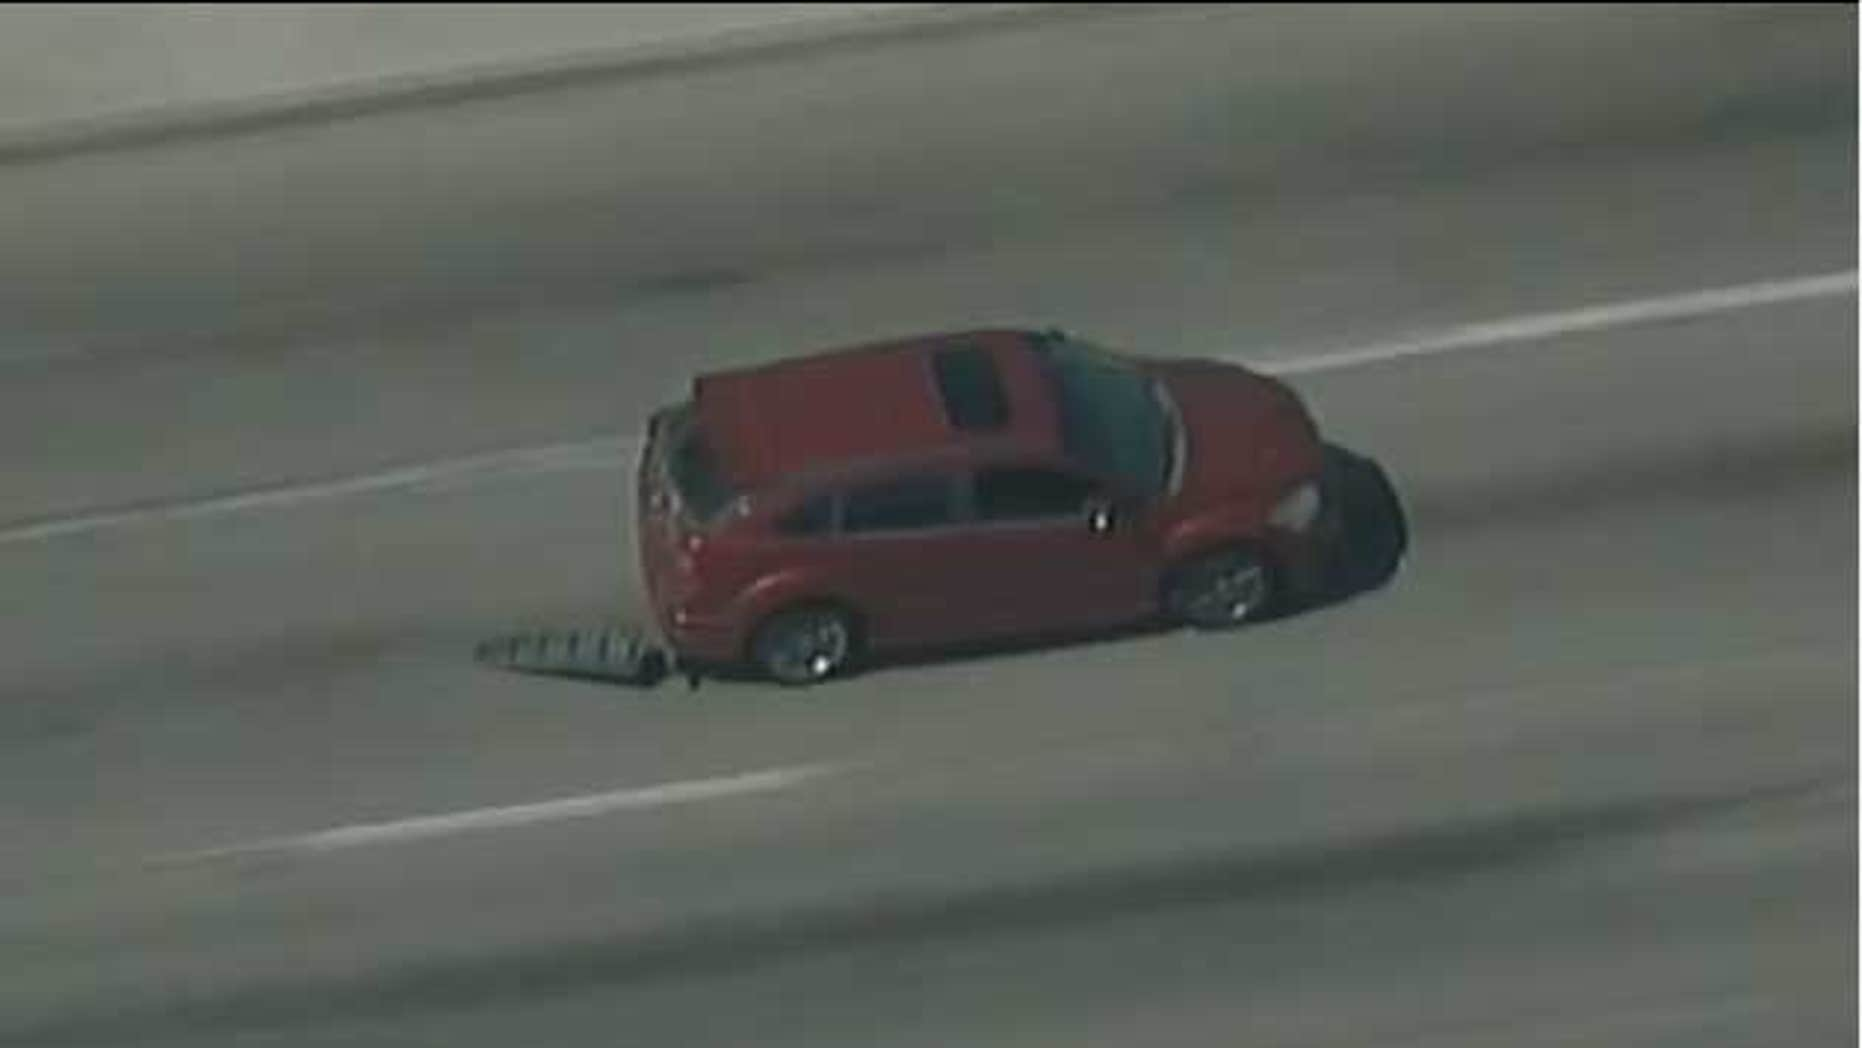 This photo shows the suspect leading police on a high speed chase in a stolen car.